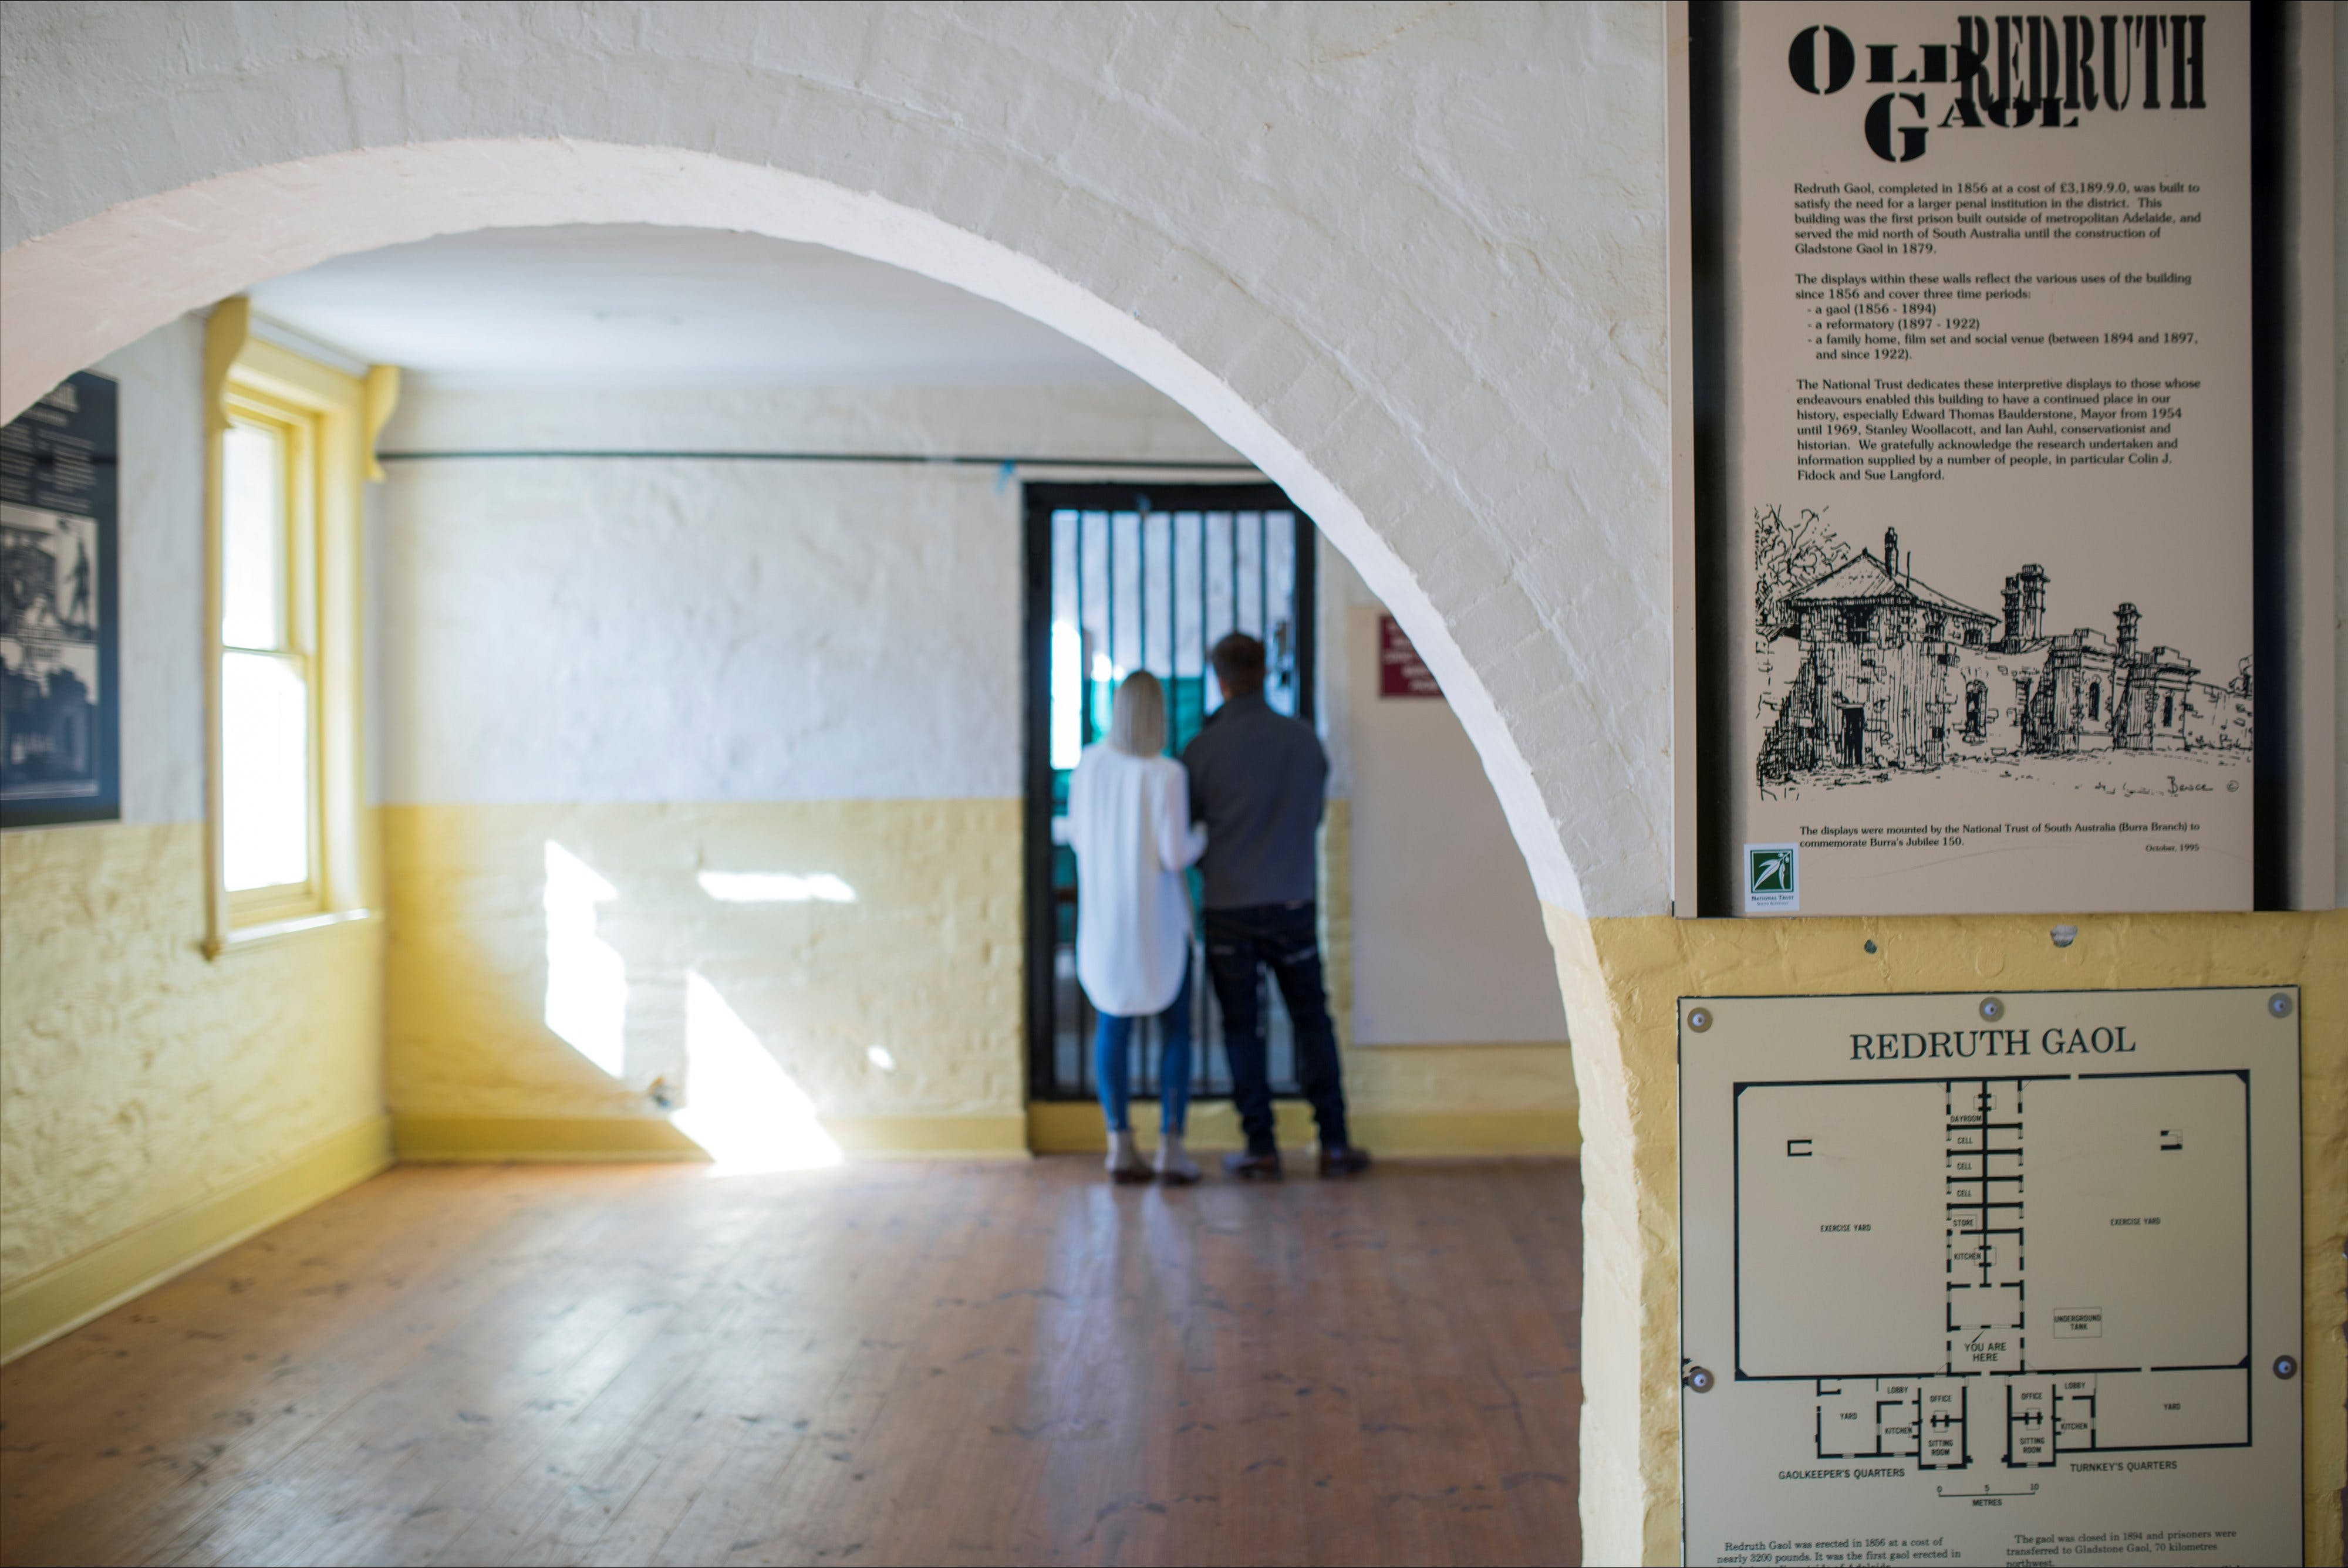 Redruth Gaol - Accommodation Adelaide